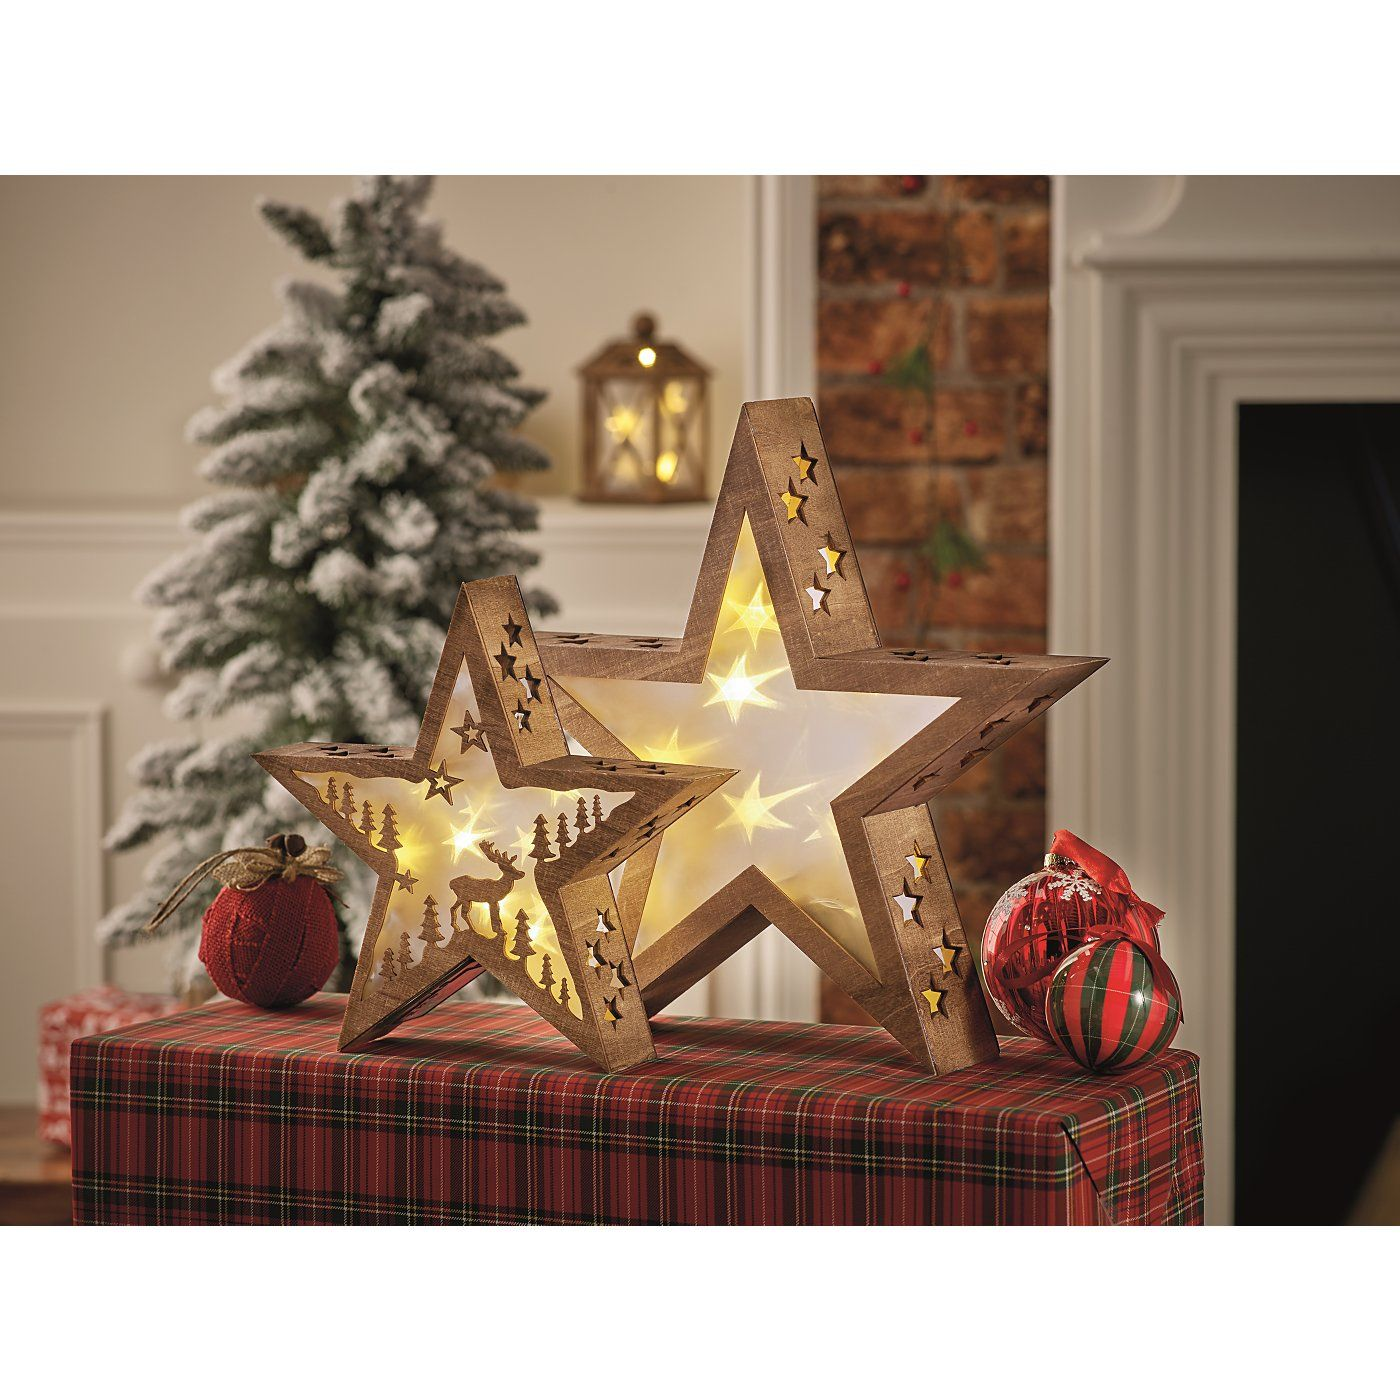 Use decorations which stand rather than hang and scatter